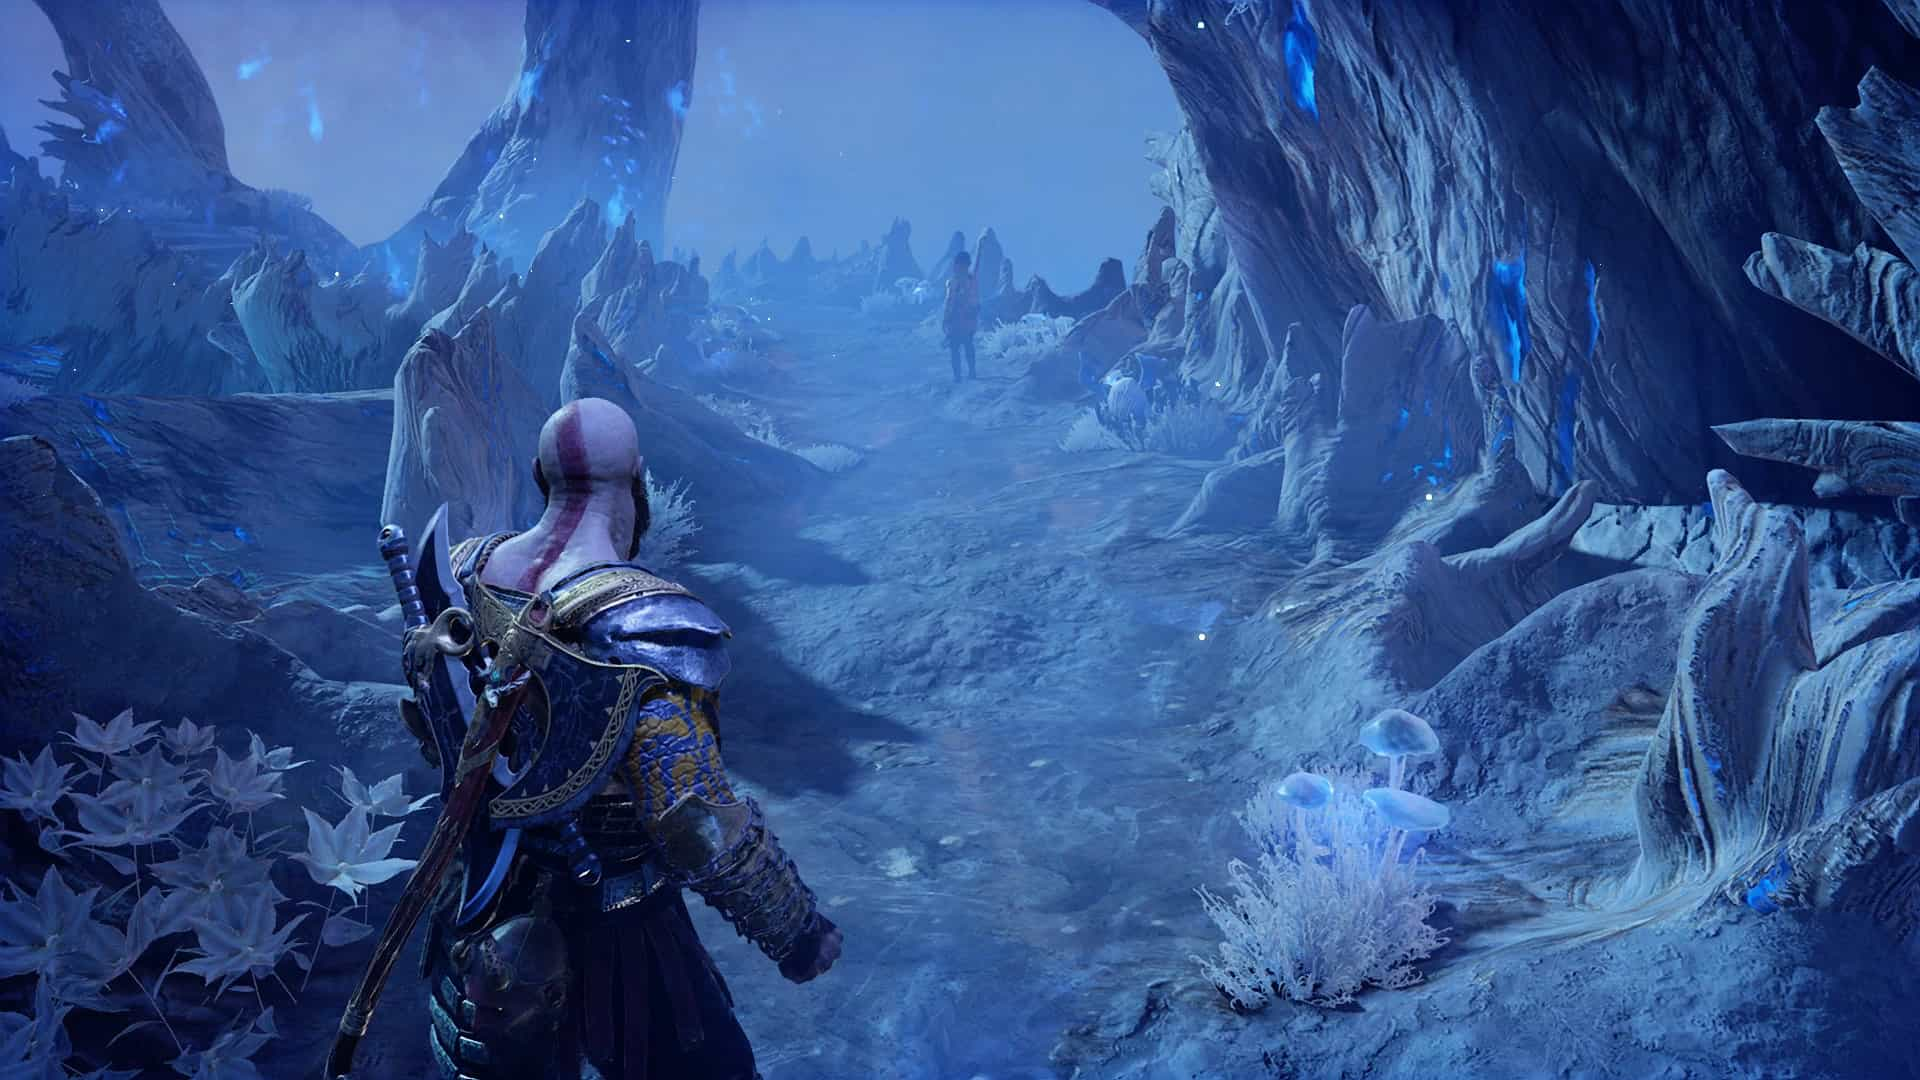 How To Unlock And Use Mystic Gateways In God Of War